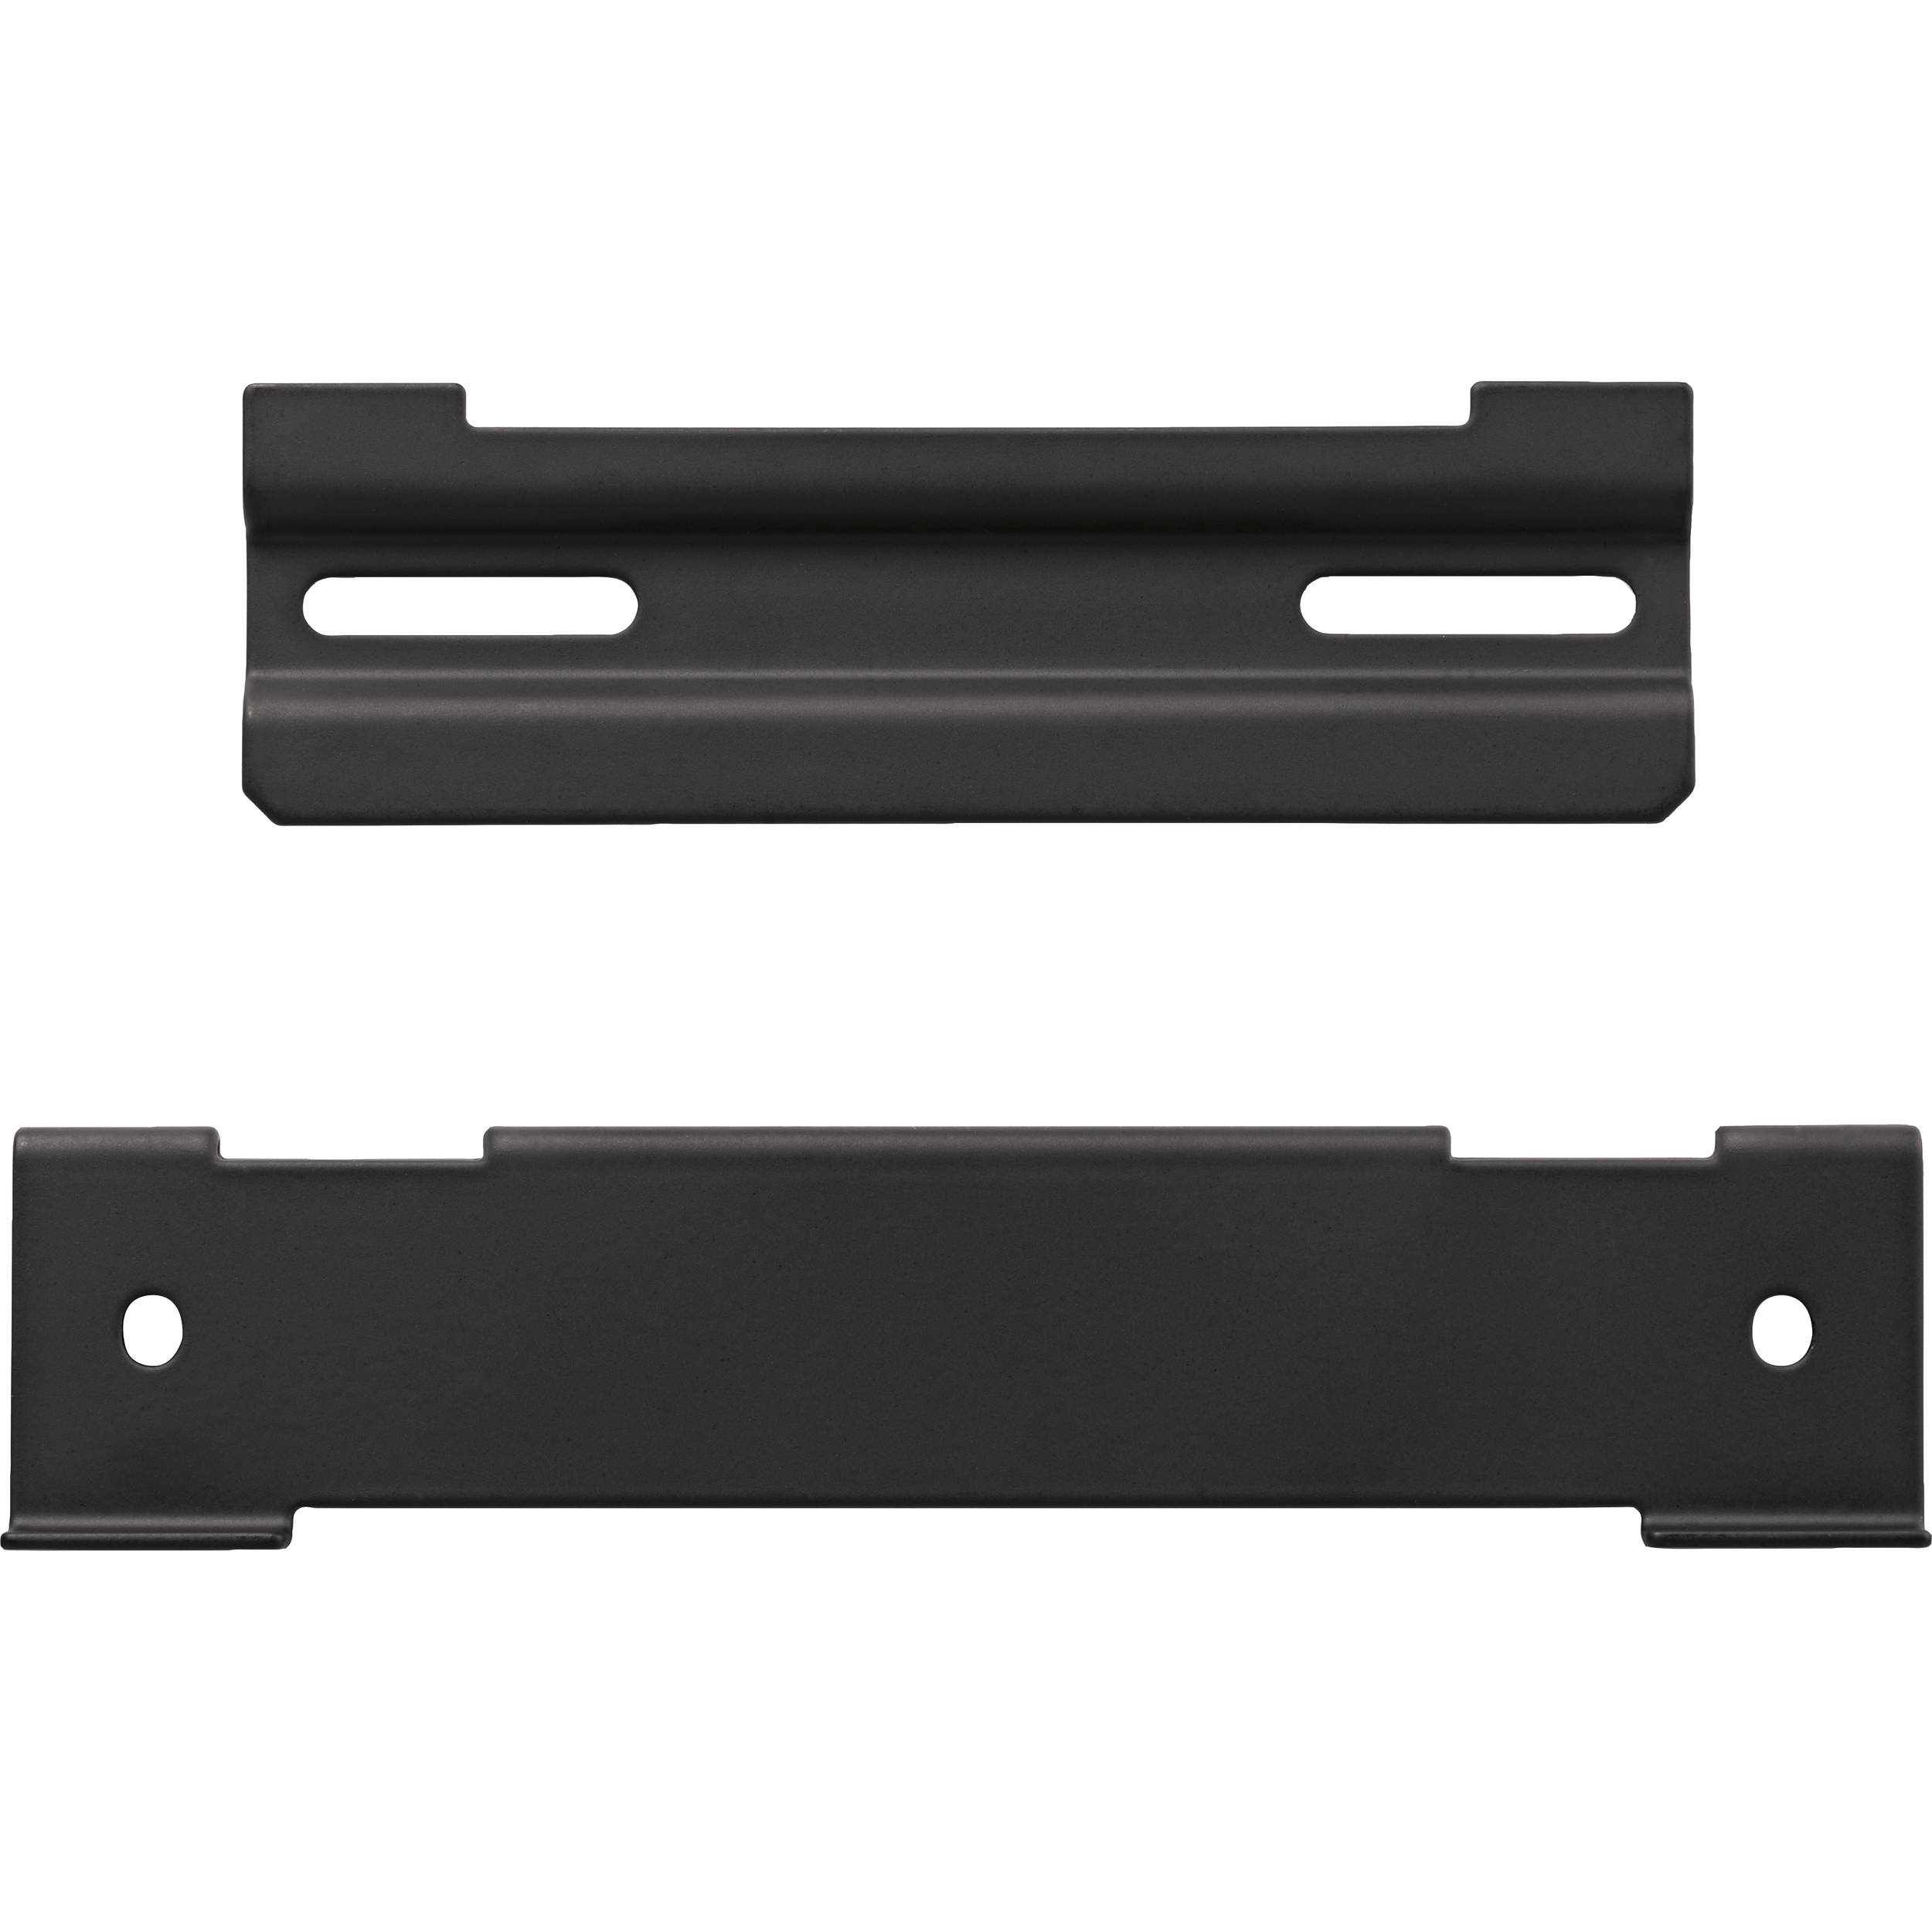 Bose WB-120 Wall Mount Kit (Black)